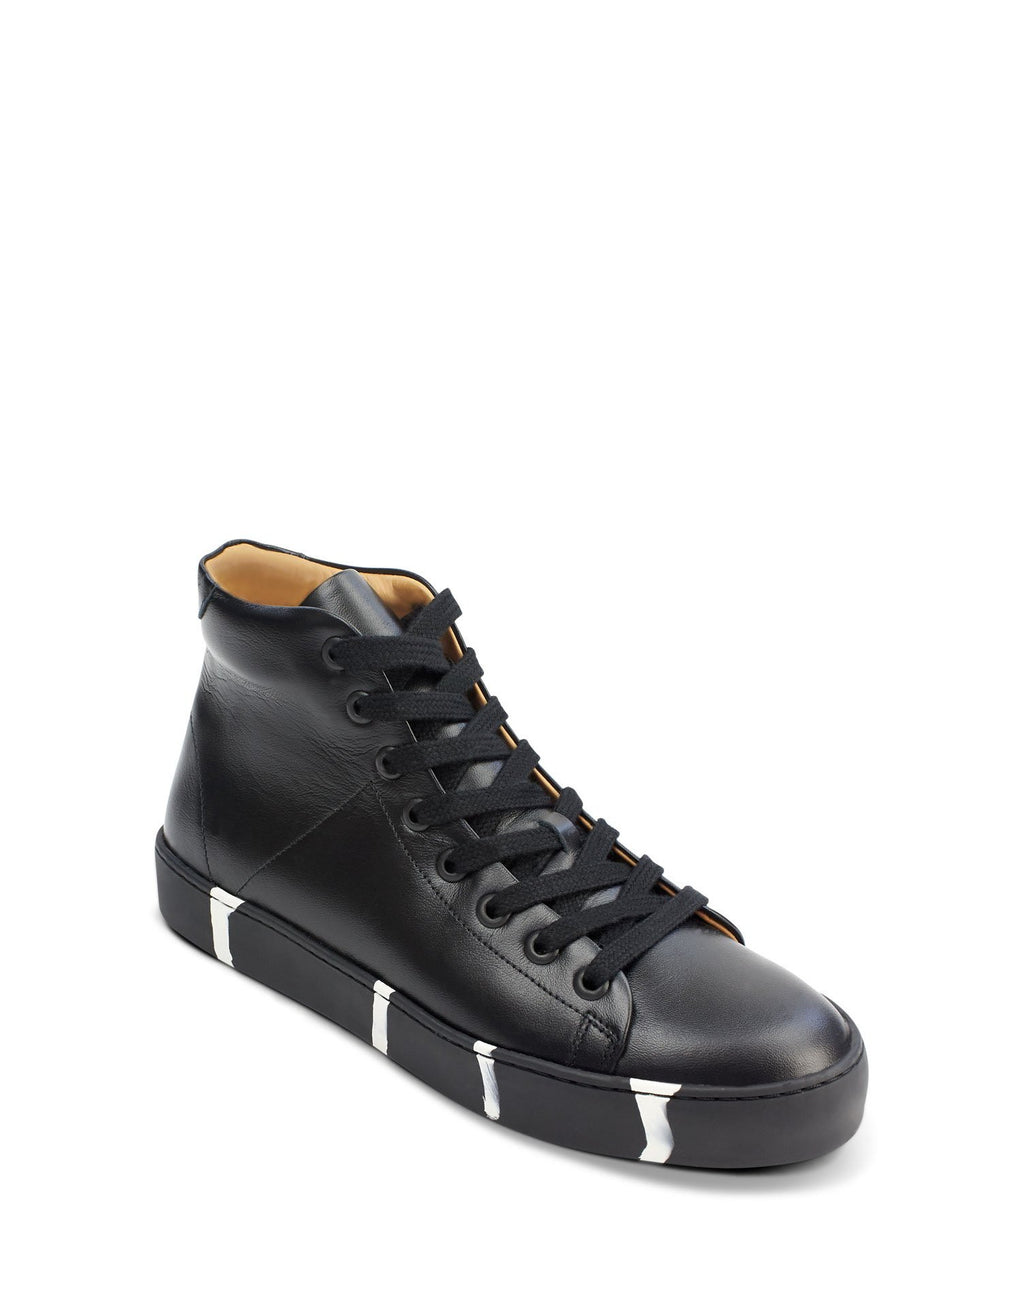 Unique black leather high top by designer Georgina Goodman